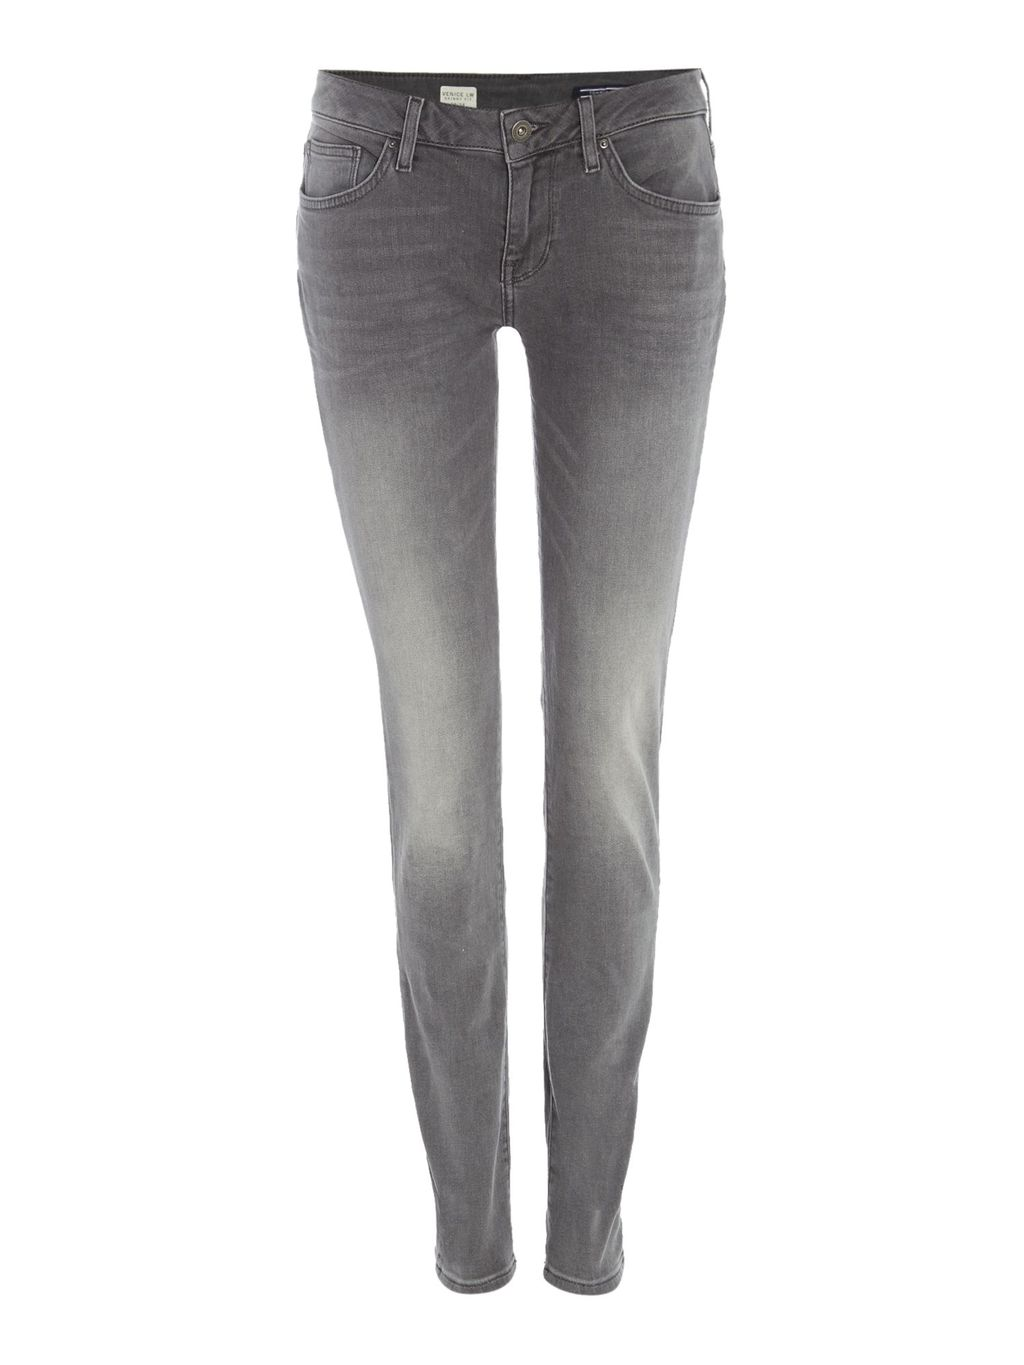 Venice Maily Jeans, Grey - style: skinny leg; length: standard; pattern: plain; pocket detail: traditional 5 pocket; waist: mid/regular rise; predominant colour: mid grey; occasions: casual; fibres: cotton - stretch; jeans detail: shading down centre of thigh; texture group: denim; pattern type: fabric; season: s/s 2016; wardrobe: highlight